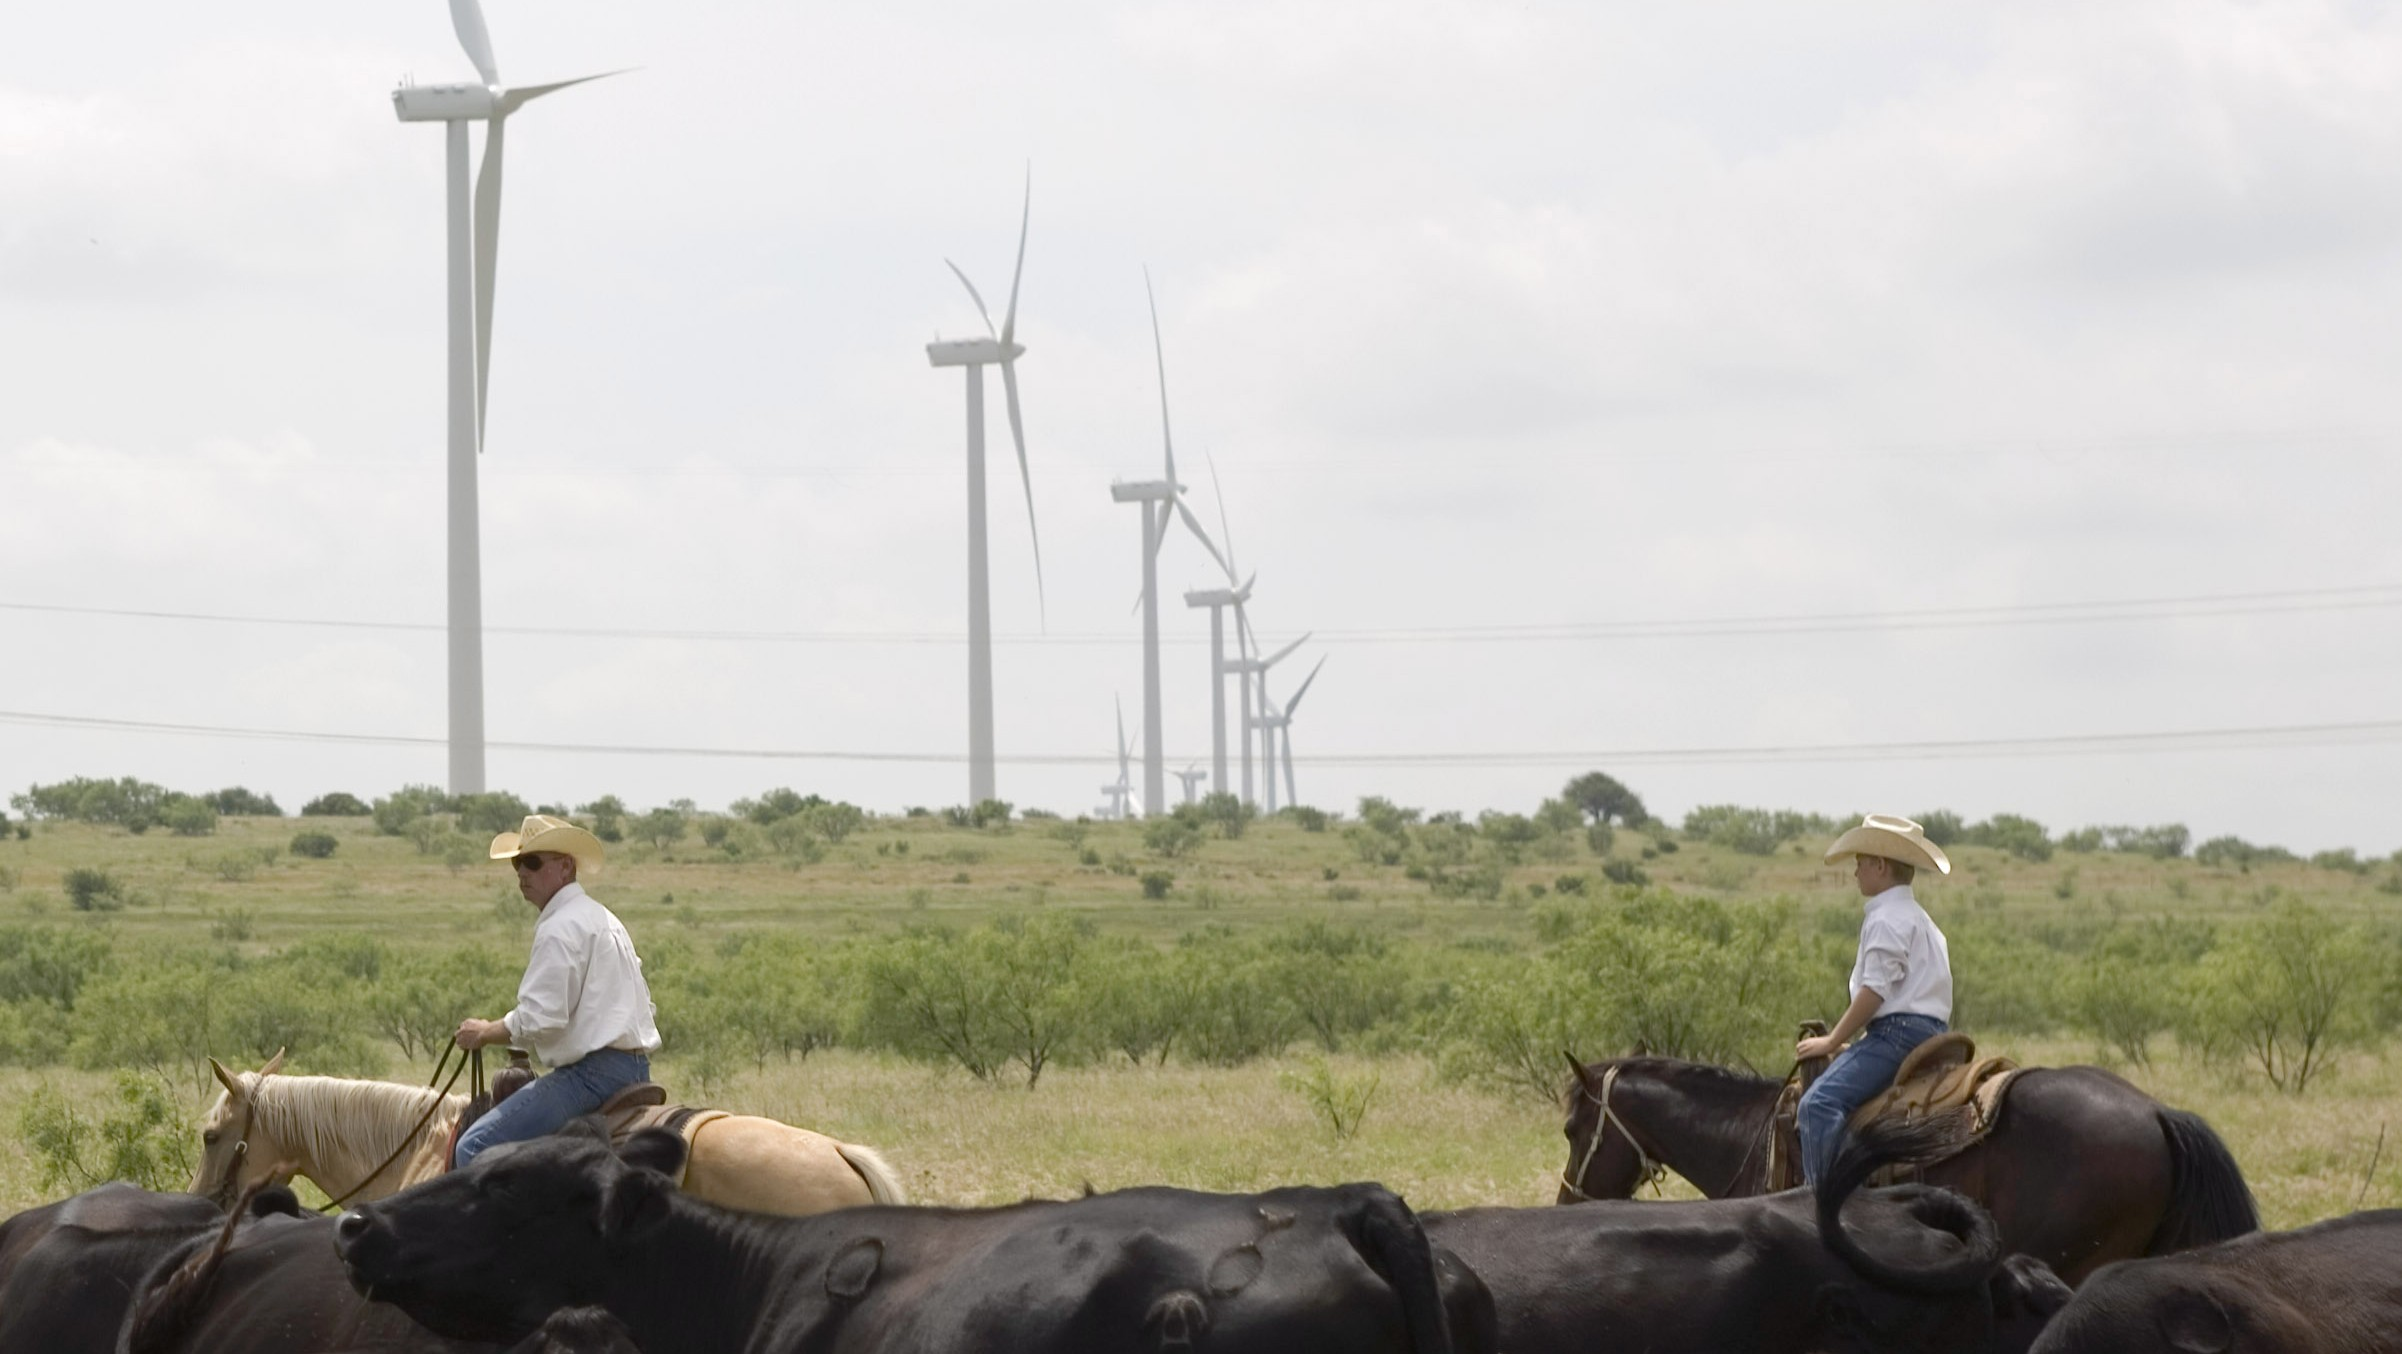 ABILENE, TX - JUNE 9:  Clifton Brandon, 43 years, left, and his 10 year old son, Teagan, round up part of their 300-head of black angus cattle on the Lone Star Wind Farm on June 9, 2007, 17 miles north of Abilene, Texas. The Brandon family leases and manages the cattle ranch they have lived on for 19 years and have no issues with the 240 foot wind towers they see every day on the owner's property. The Lone Star Wind Farm, into its second phase, is spread over 40,000 acres of ranch land with 7 landowners. The 400 megawatt project, owned by Horizon Wind Energy, uses 200 Spanish-built Gamesa 2 MW turbines set on top of 250 foot towers. The ranchers are compensated by a series of easement payments for underground cable collection, access roads, tower base areas, electricity substations and deer hunting restriction credits in areas under construction. Revenue per tower can range from $5,000 to $50,000 per month per tower depending on the variable wind strengths. Abilene and central West Texas is considered a major area for wind power making Texas the largest producer of wind power in the US. The power from the wind farm is connected into TXU's nearby overhead power lines. More than 20 states have requirements that utilities use some percentage of renewable power, and talk is increasing in Washington of enacting a federal standard for utilities and eventually some kind of carbon tax to penalize the use of fossil fuels that produce global warming gases. (Photo by Robert Nickelsberg/Getty Images)